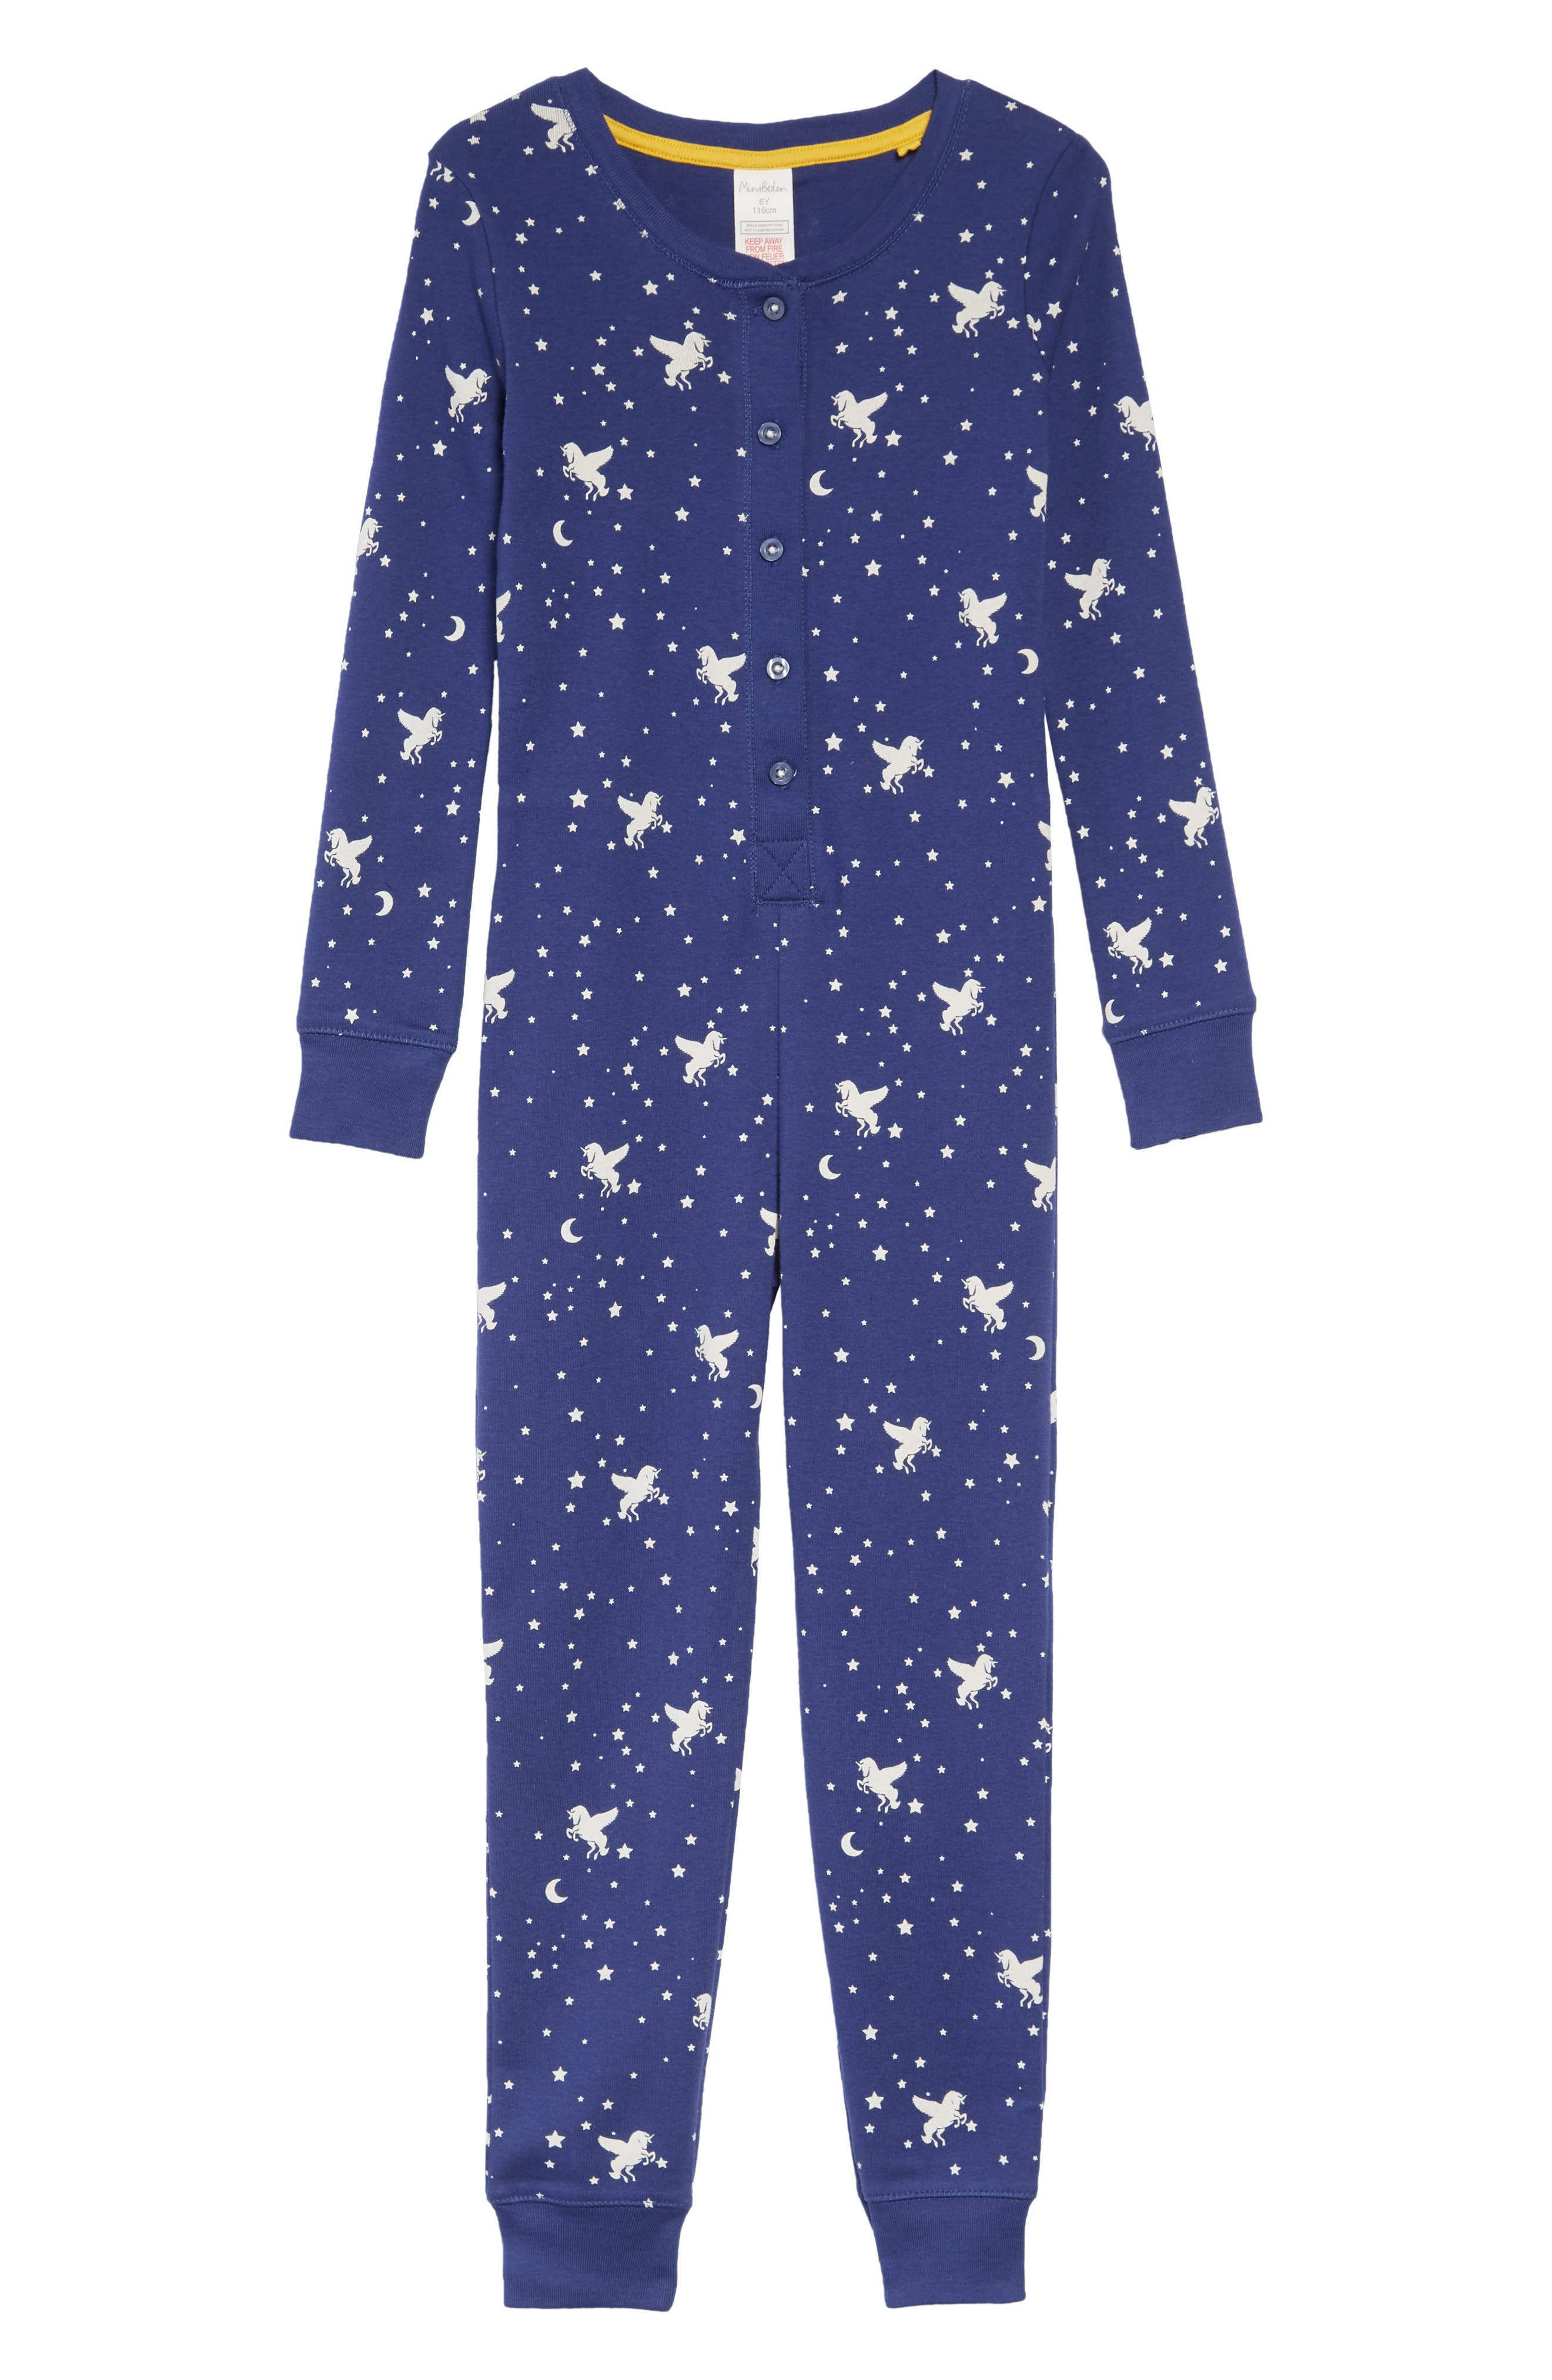 Fitted Cosy All in One Pajamas,                         Main,                         color, DBL STARBOARD BLUE UNICORN SKY